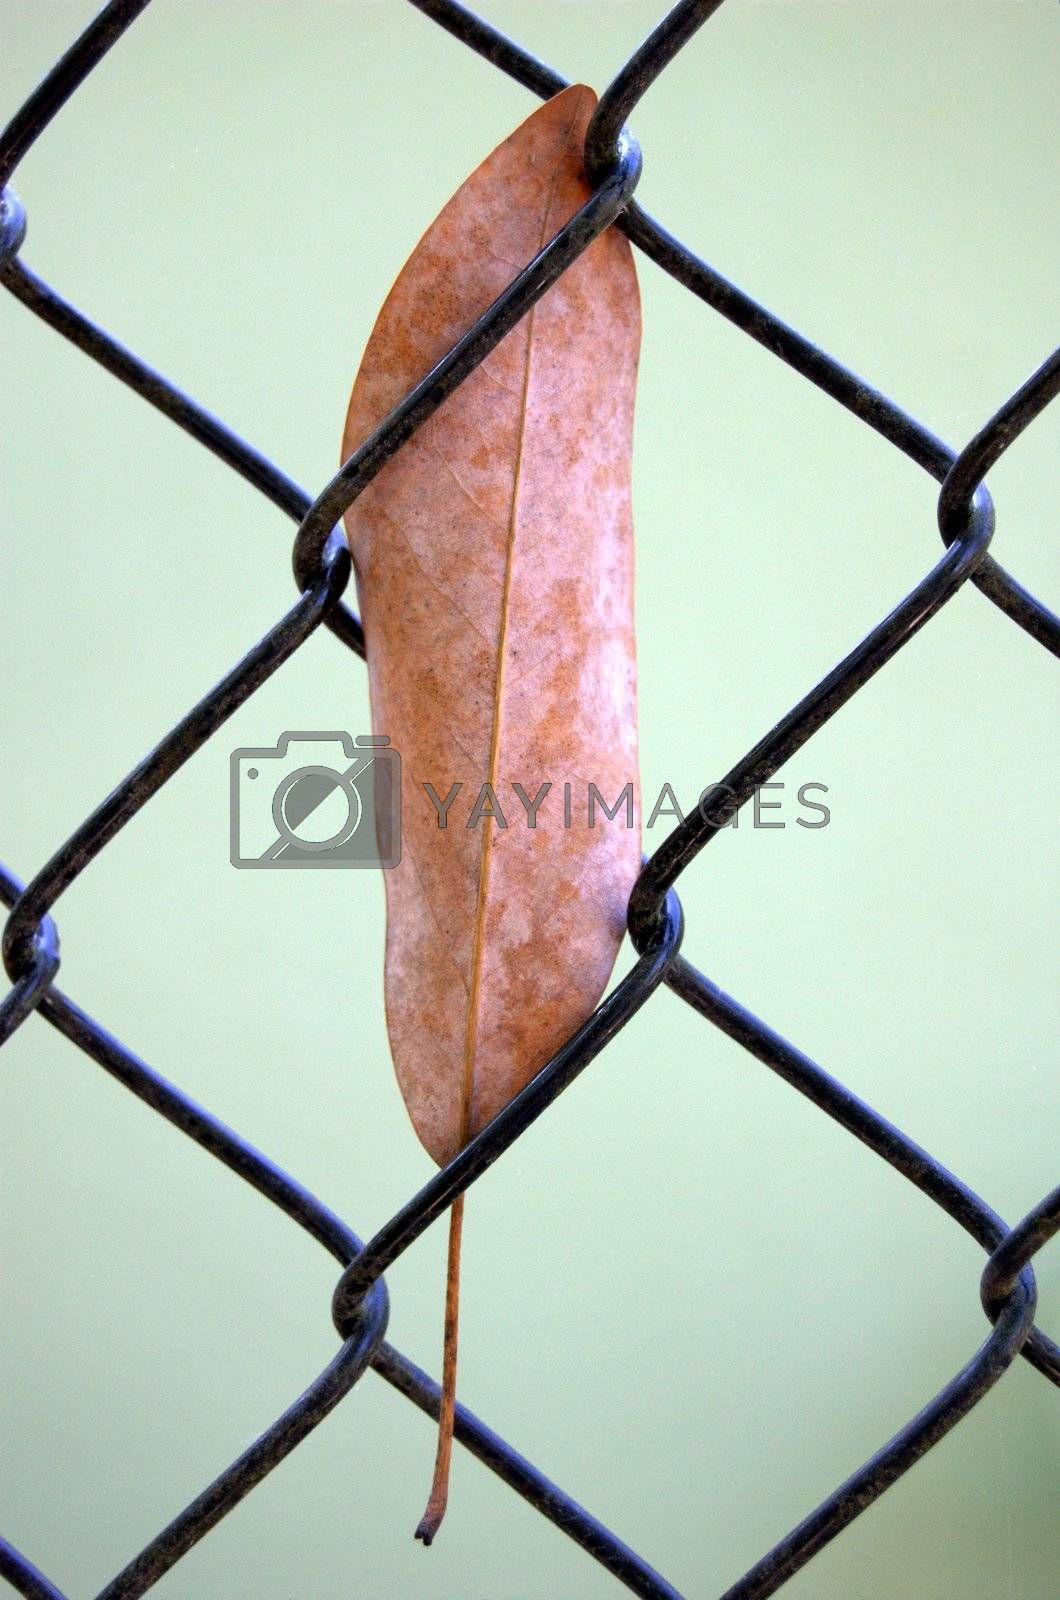 Leaf stuck in a chain link fence